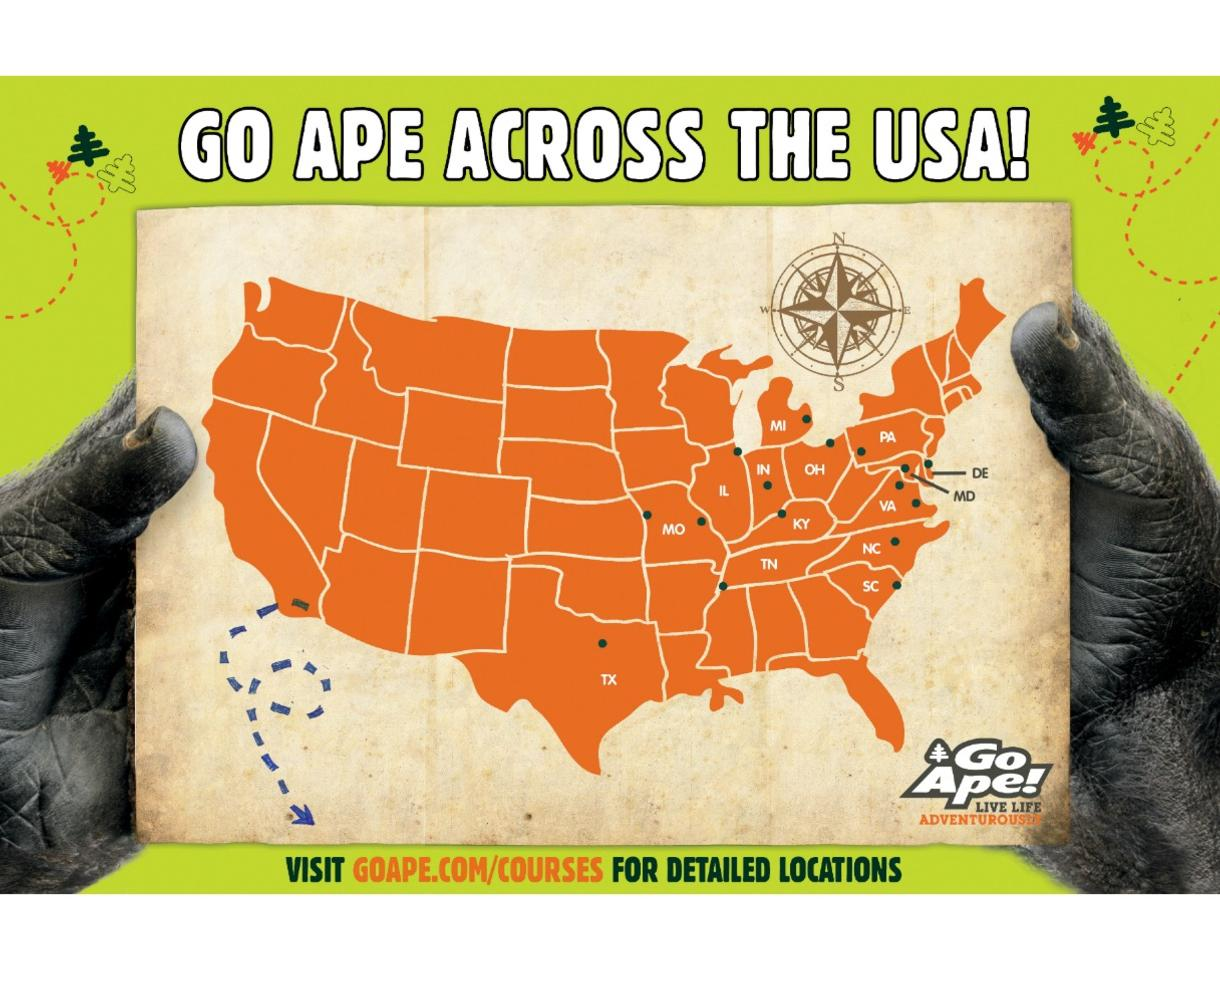 $23+ for Go Ape Treetop Junior or Treetop Adventure - BRAND NEW Springfield, VA Location + 11 Other U.S. Locations!